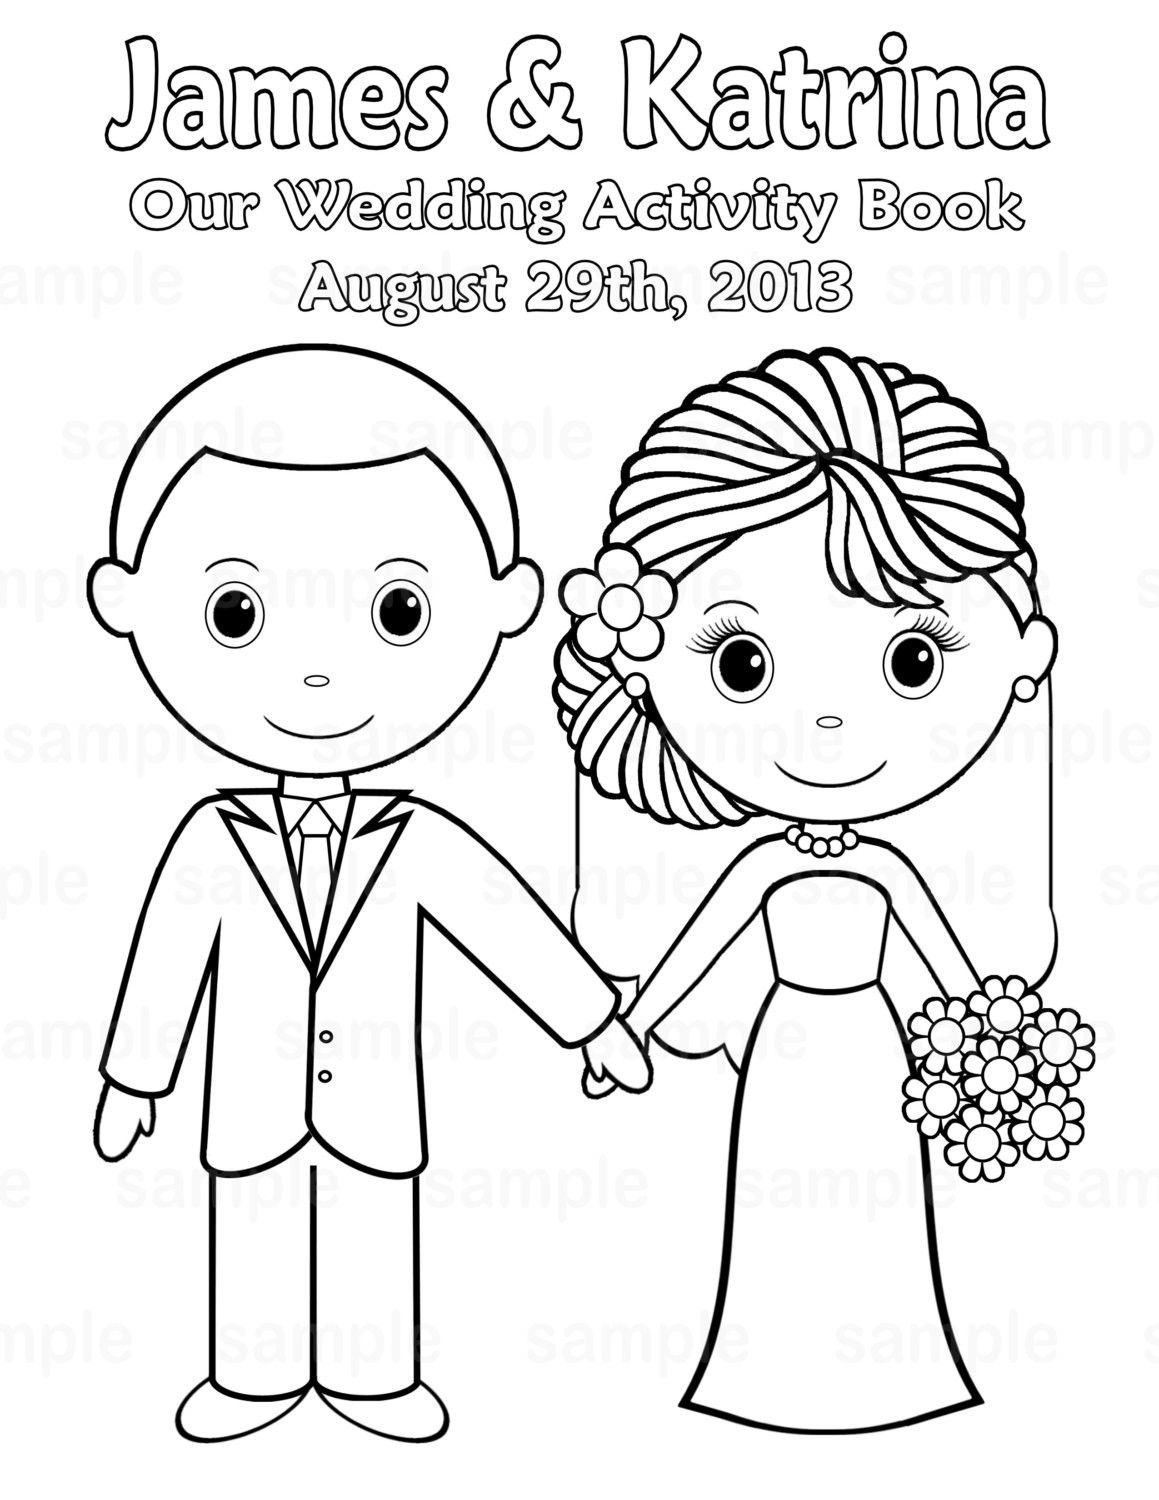 Free Printable Wedding Coloring Pages | Free Printable ...